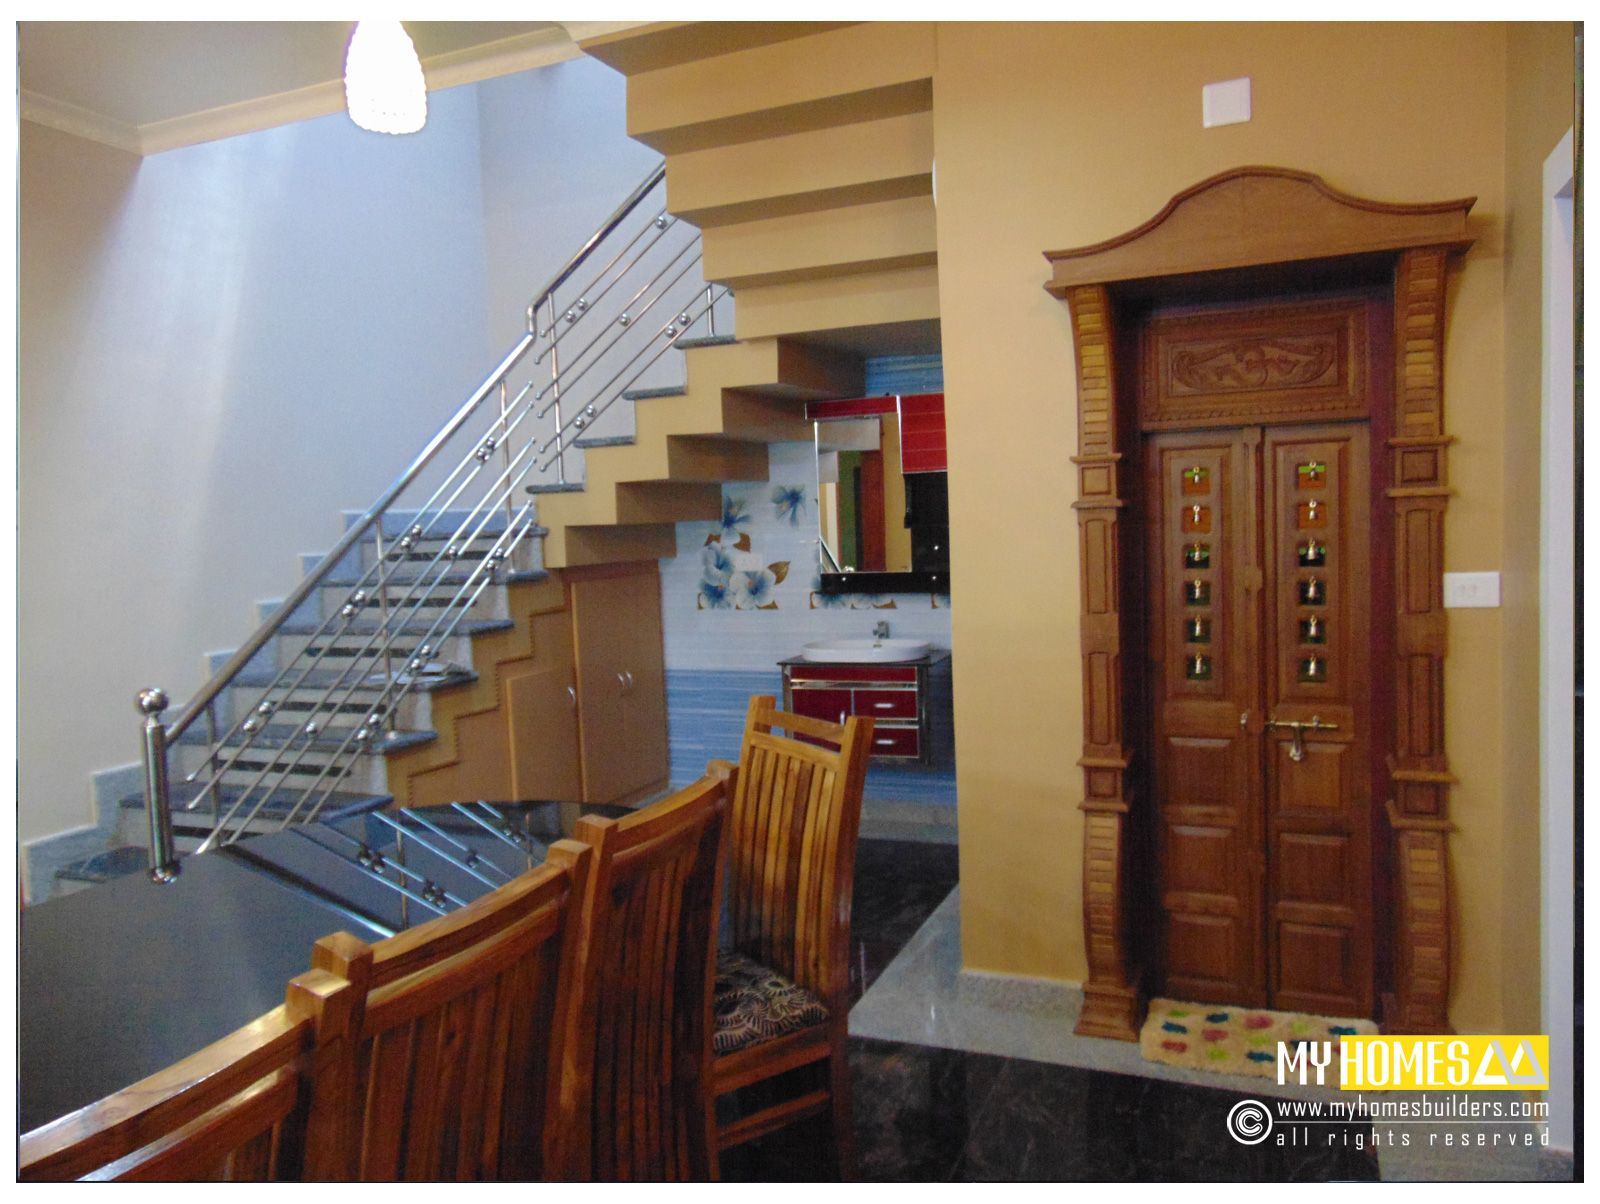 Kerala House Interior Staircase